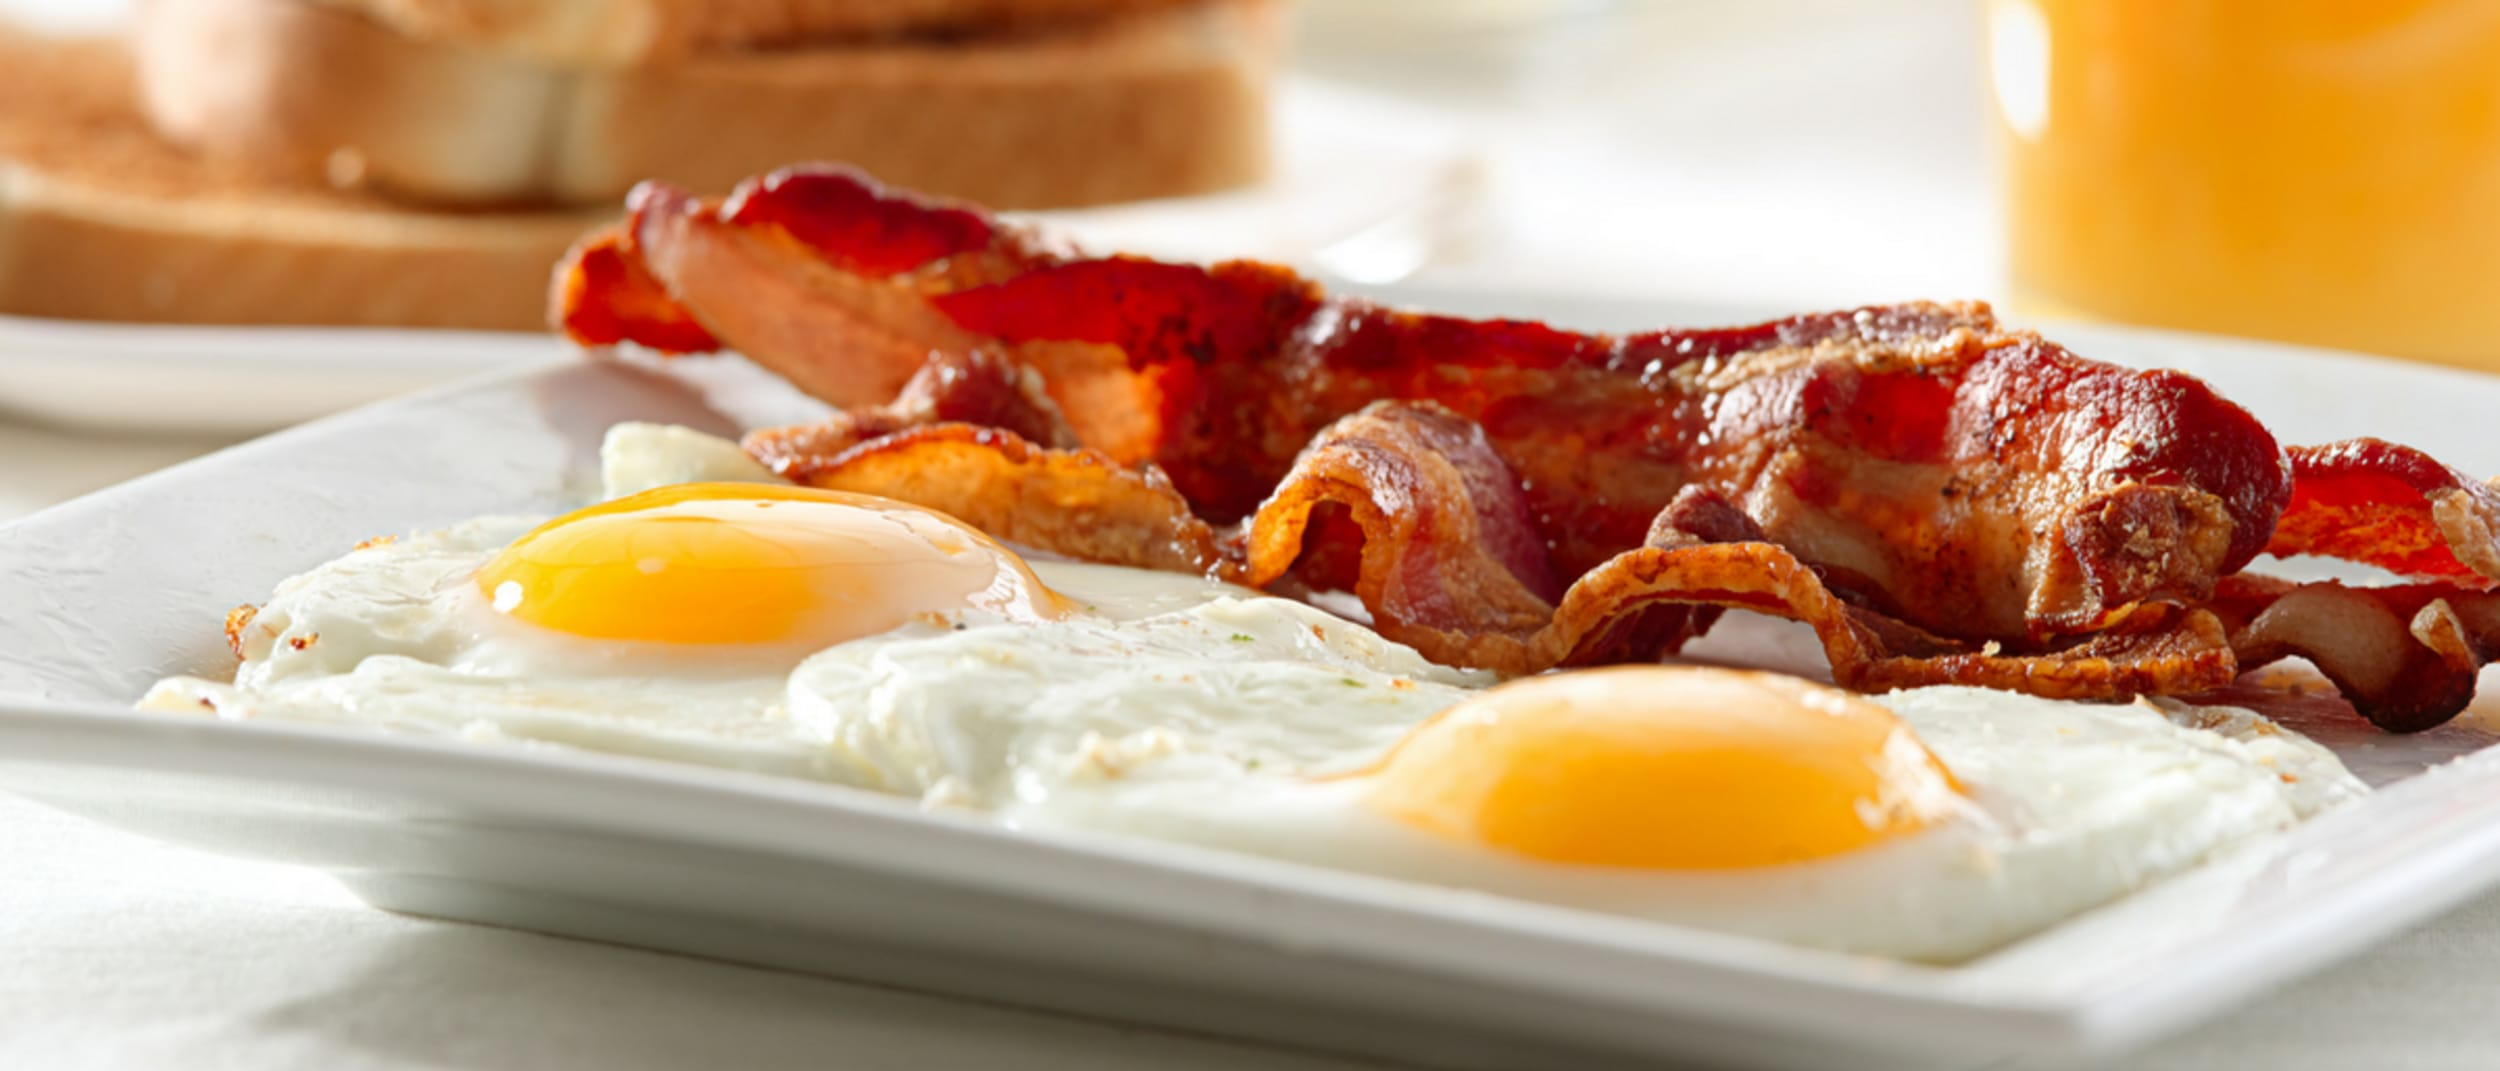 Barcella: bacon, scrambled eggs, hashbrown and toast for $6.90